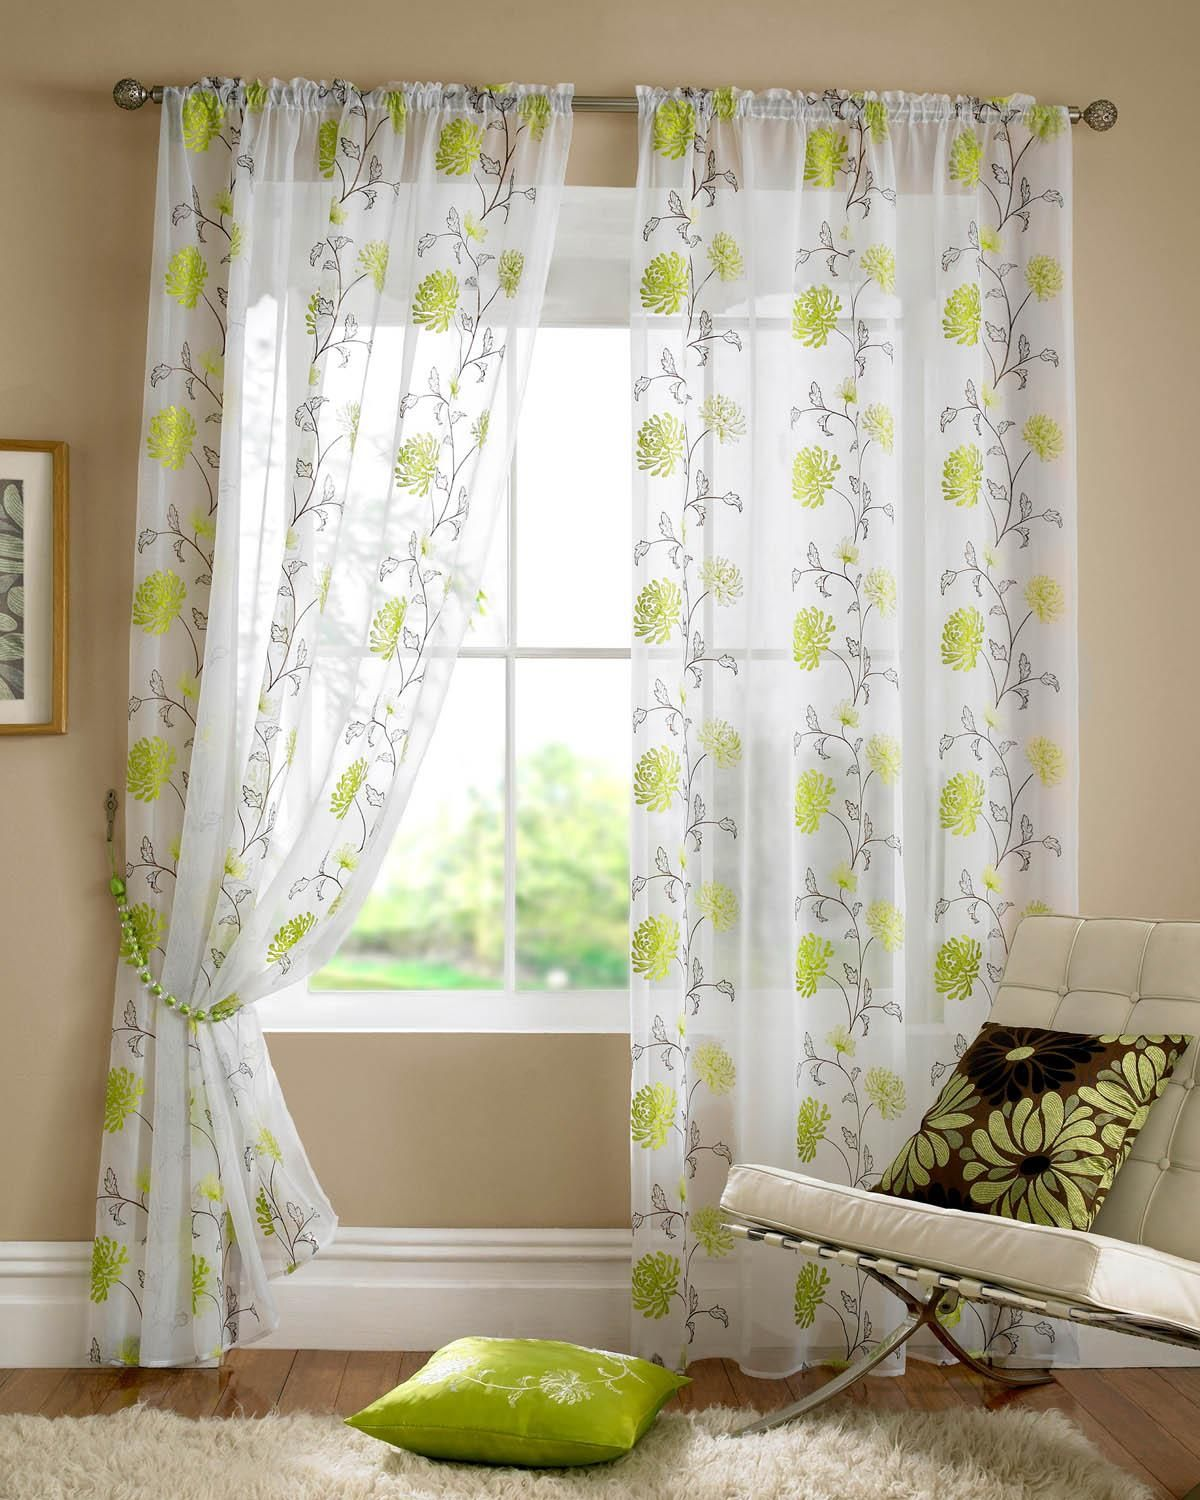 Lombok Rod Pocket Voile Lime Cheap Green Curtain Voile